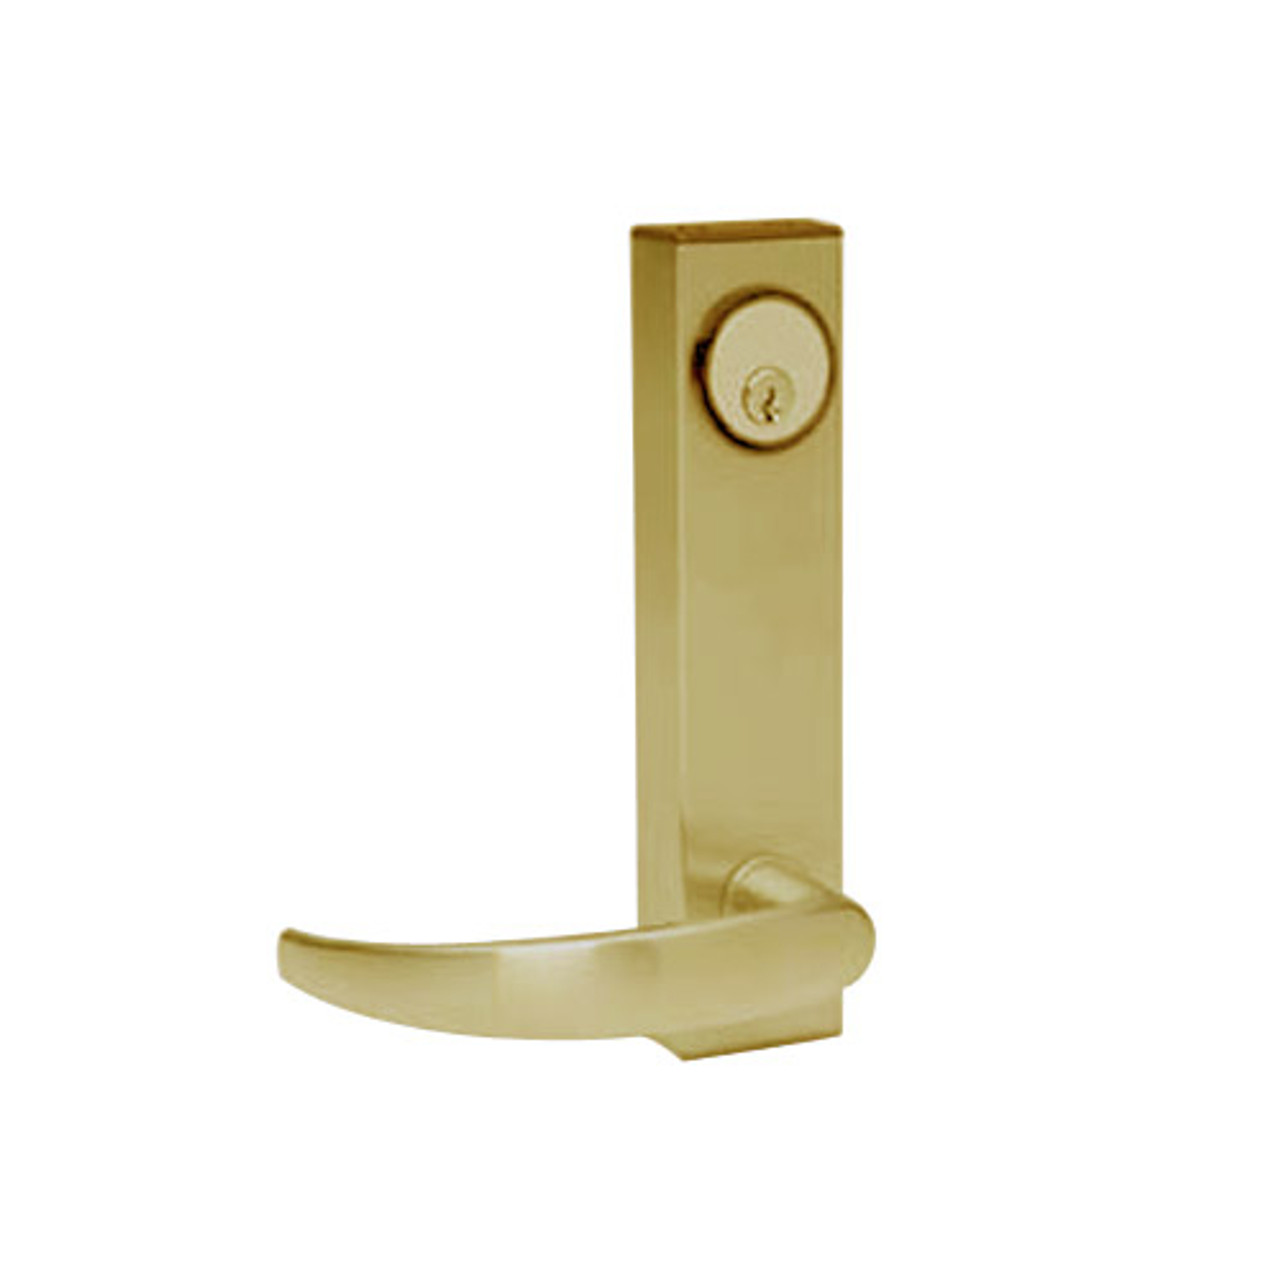 3080E-01-0-34-50 US4 Adams Rite Electrified Entry Trim with Curve Lever in Satin Brass Finish